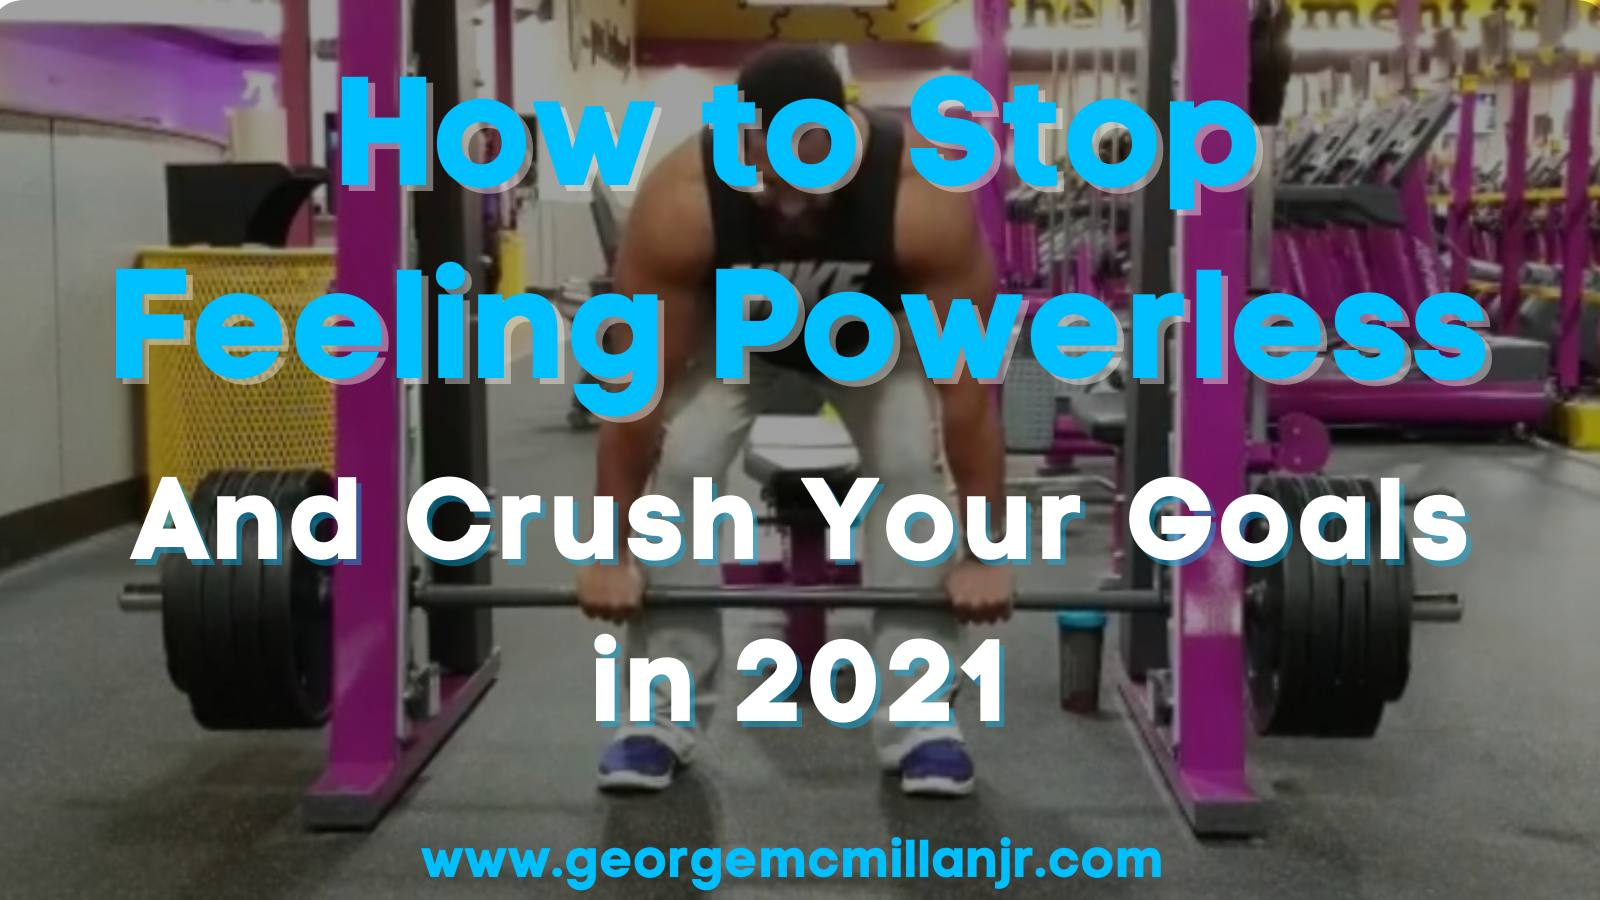 Image of a black man deadlifting at the gym and says, How to Stop Feeling Powerless and Crush Your Goals in 2021.